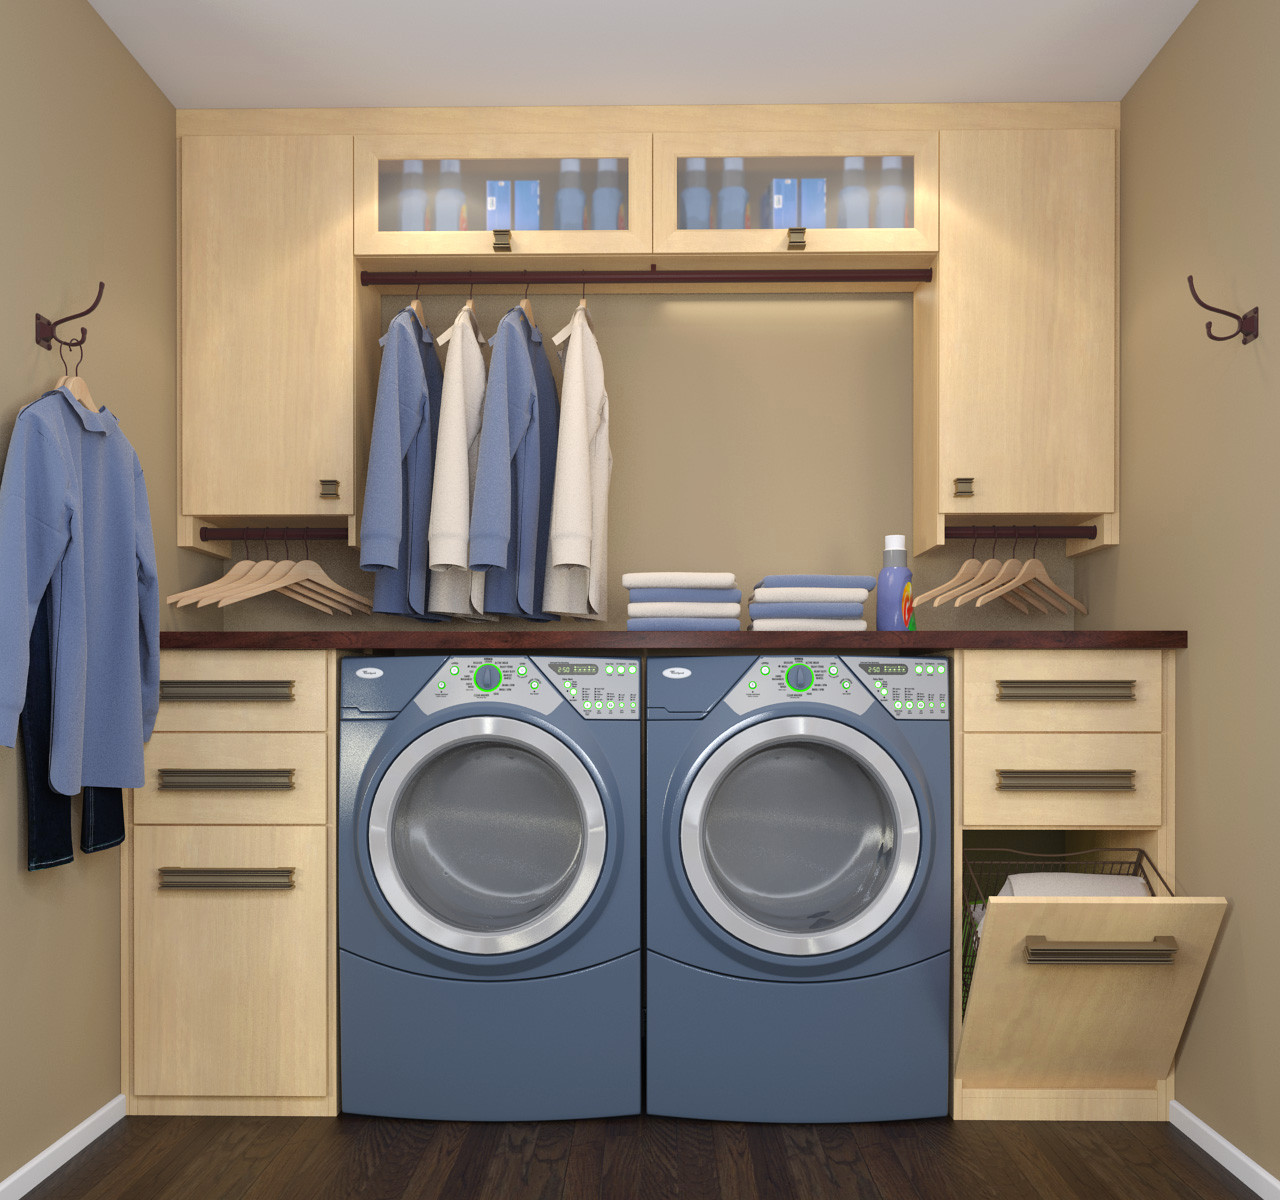 75 Beautiful Laundry Room With Laminate Countertops Pictures Ideas March 2021 Houzz